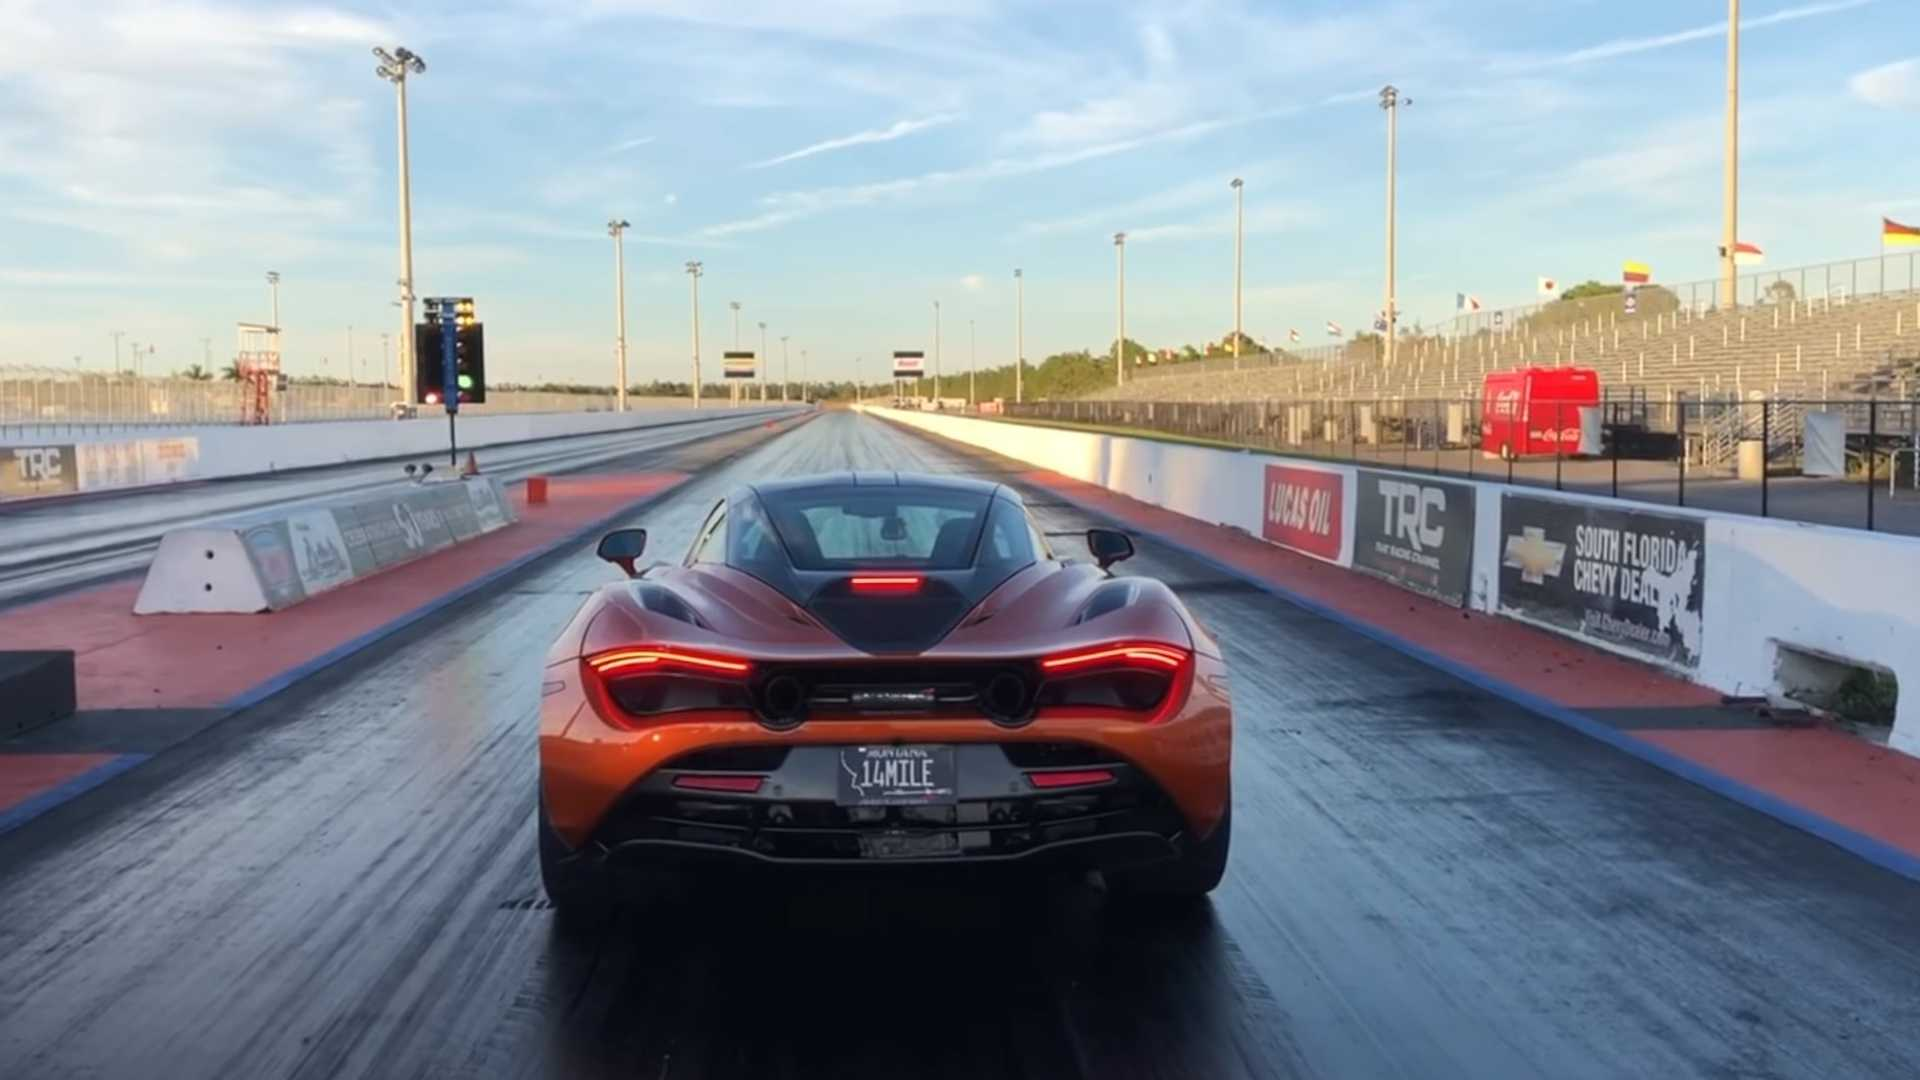 see mclaren 720s with new tires do 0-60 mph in 2.39 seconds